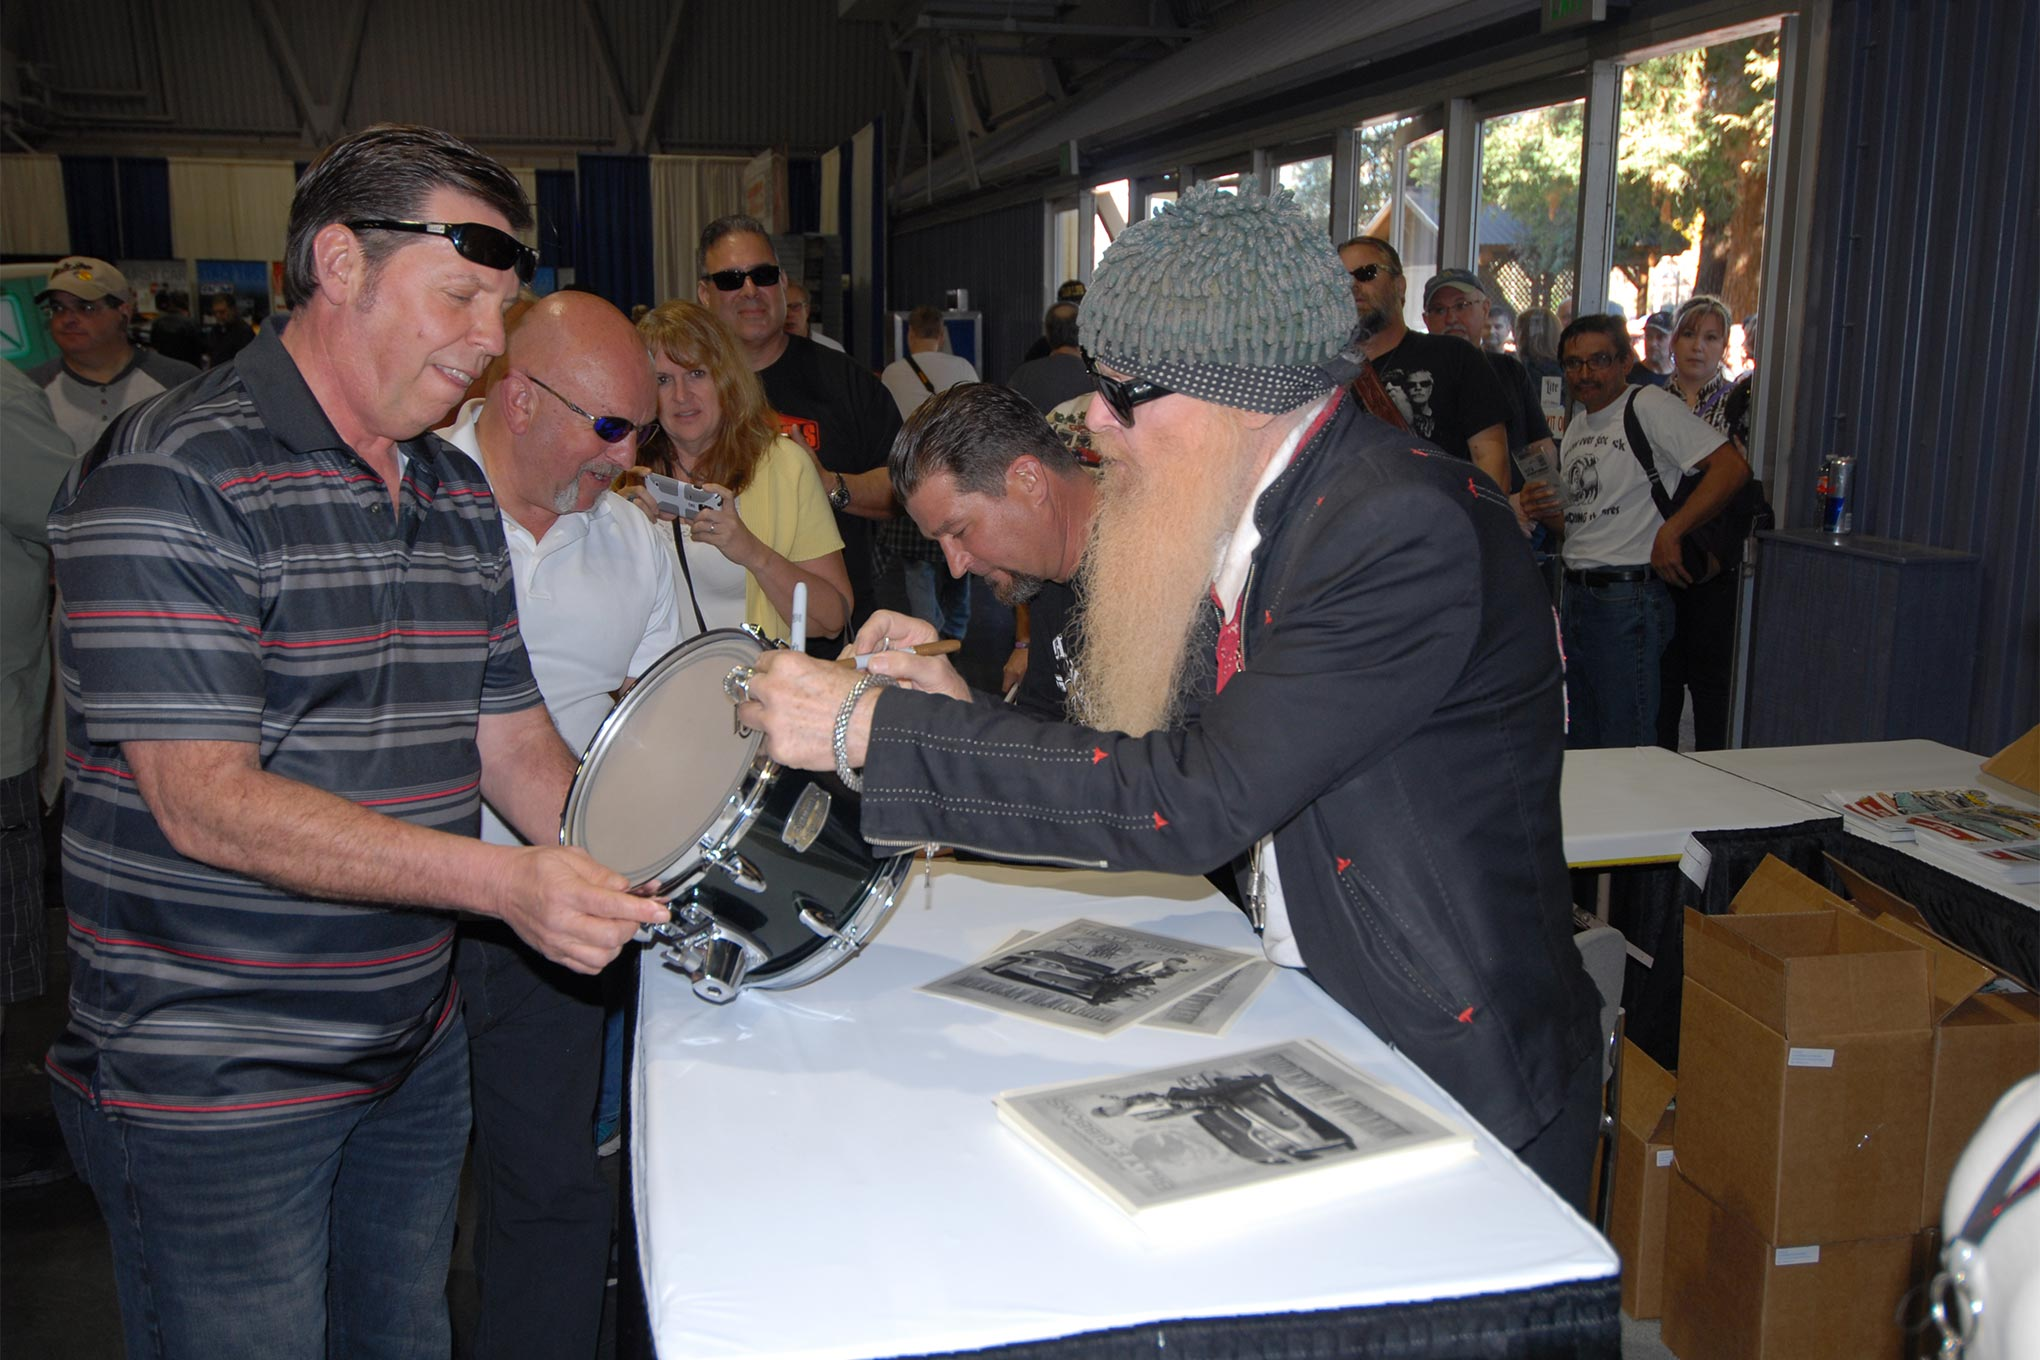 Star Power: The line of autograph seekers extending outside and partway around the main building on Saturday suggested that celebrities Billy Gibbons and Jimmy Shine had something to do with attracting the biggest single-day crowd in recent history.